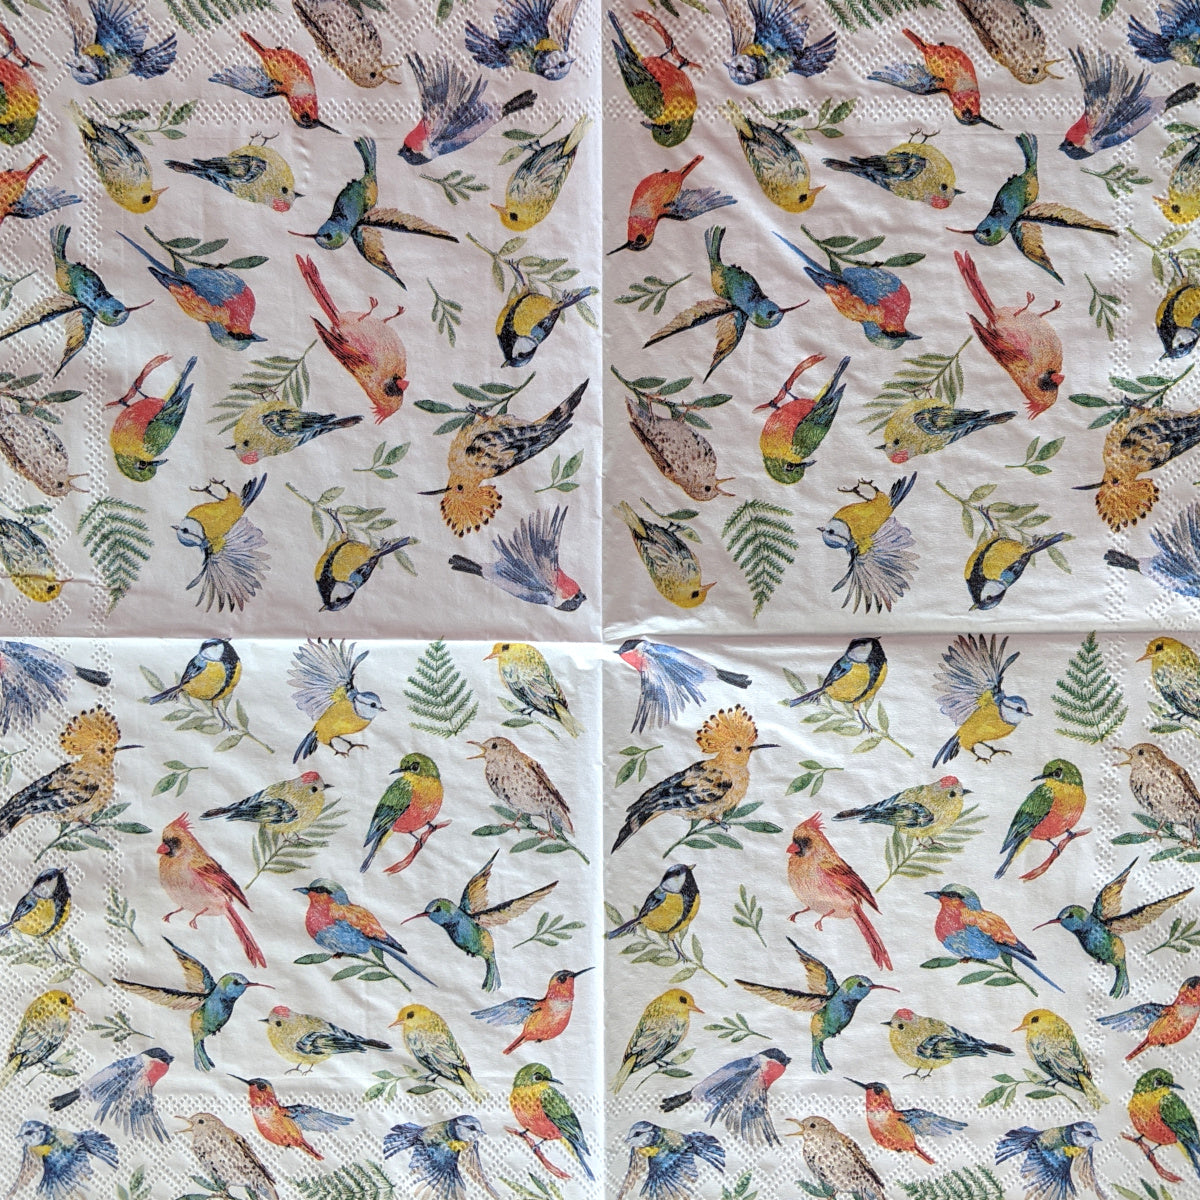 Bird Votes Decoupage Napkins